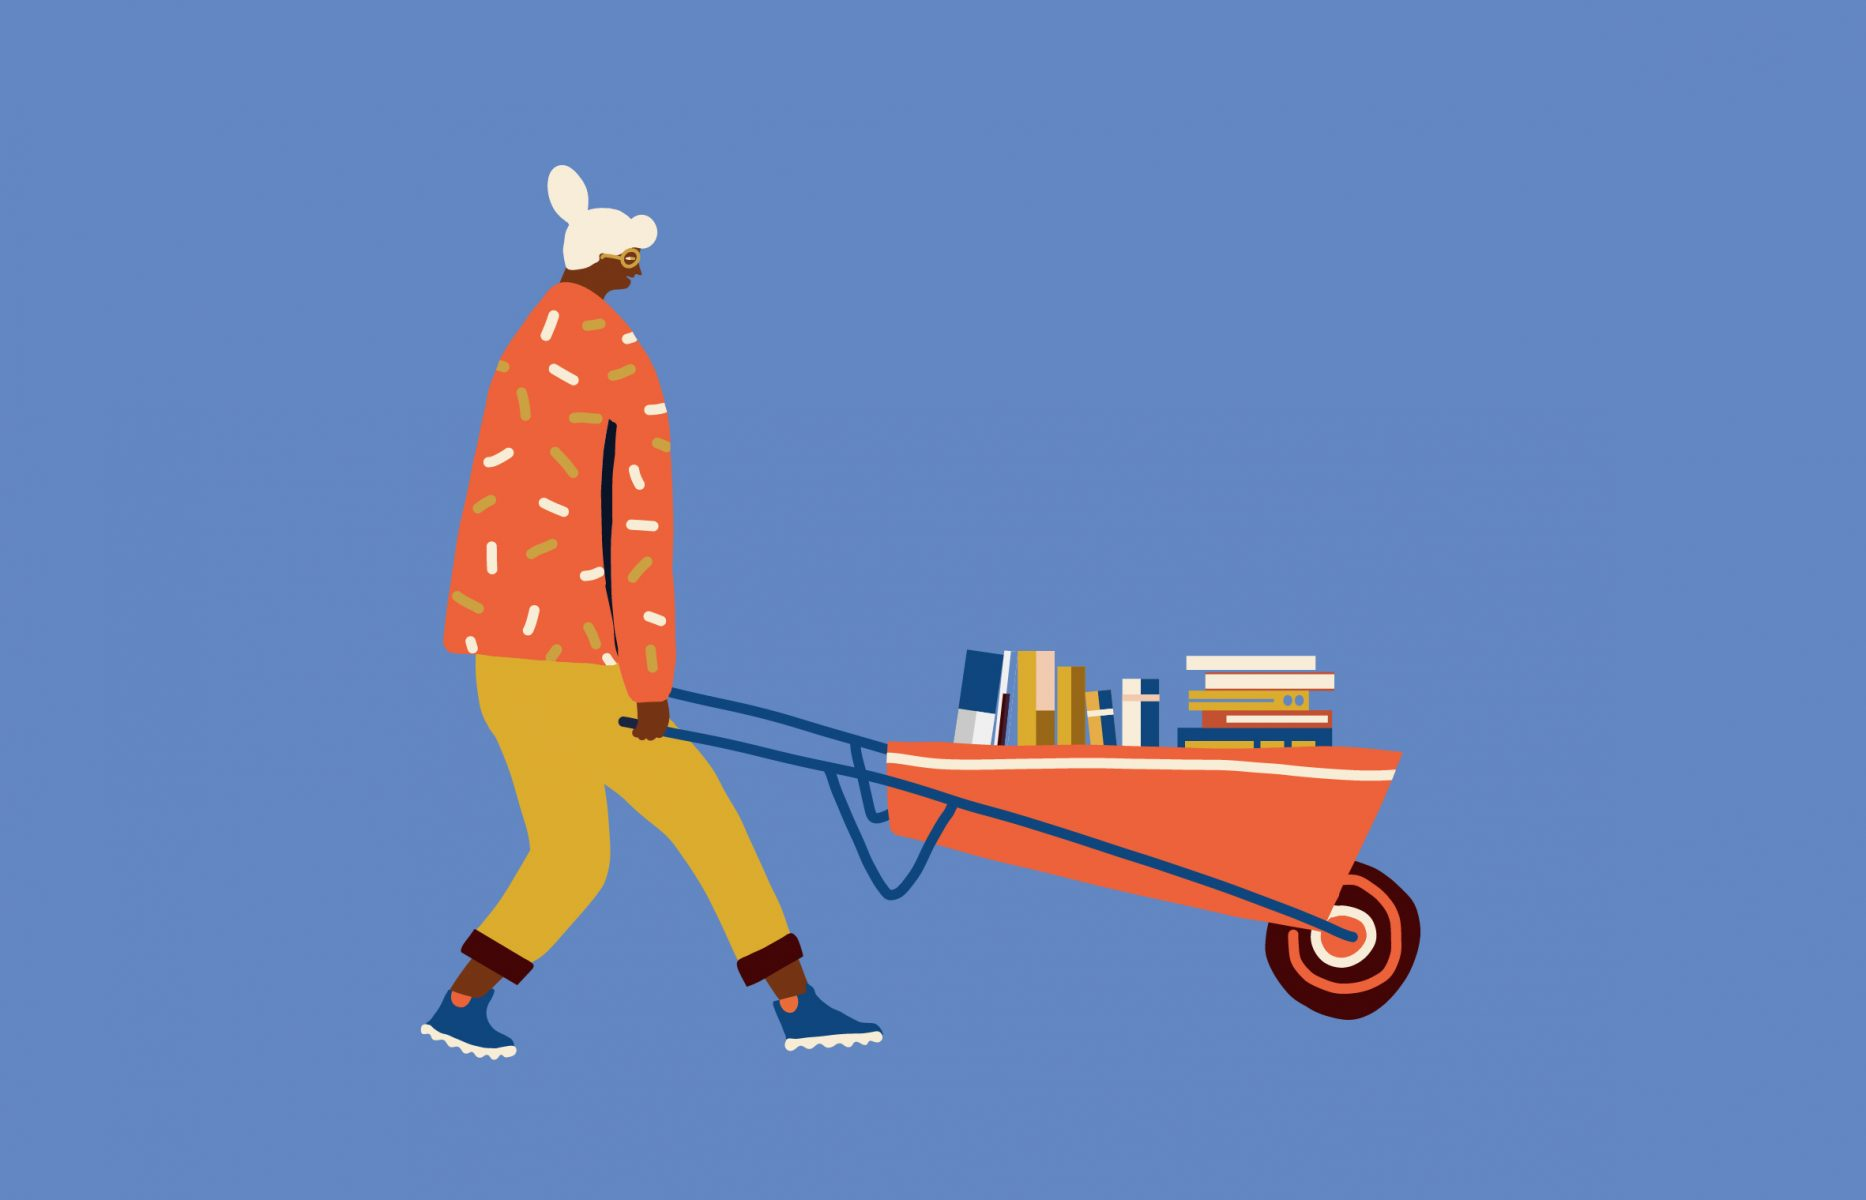 An illustration of a person carrying books in a wheel barrow